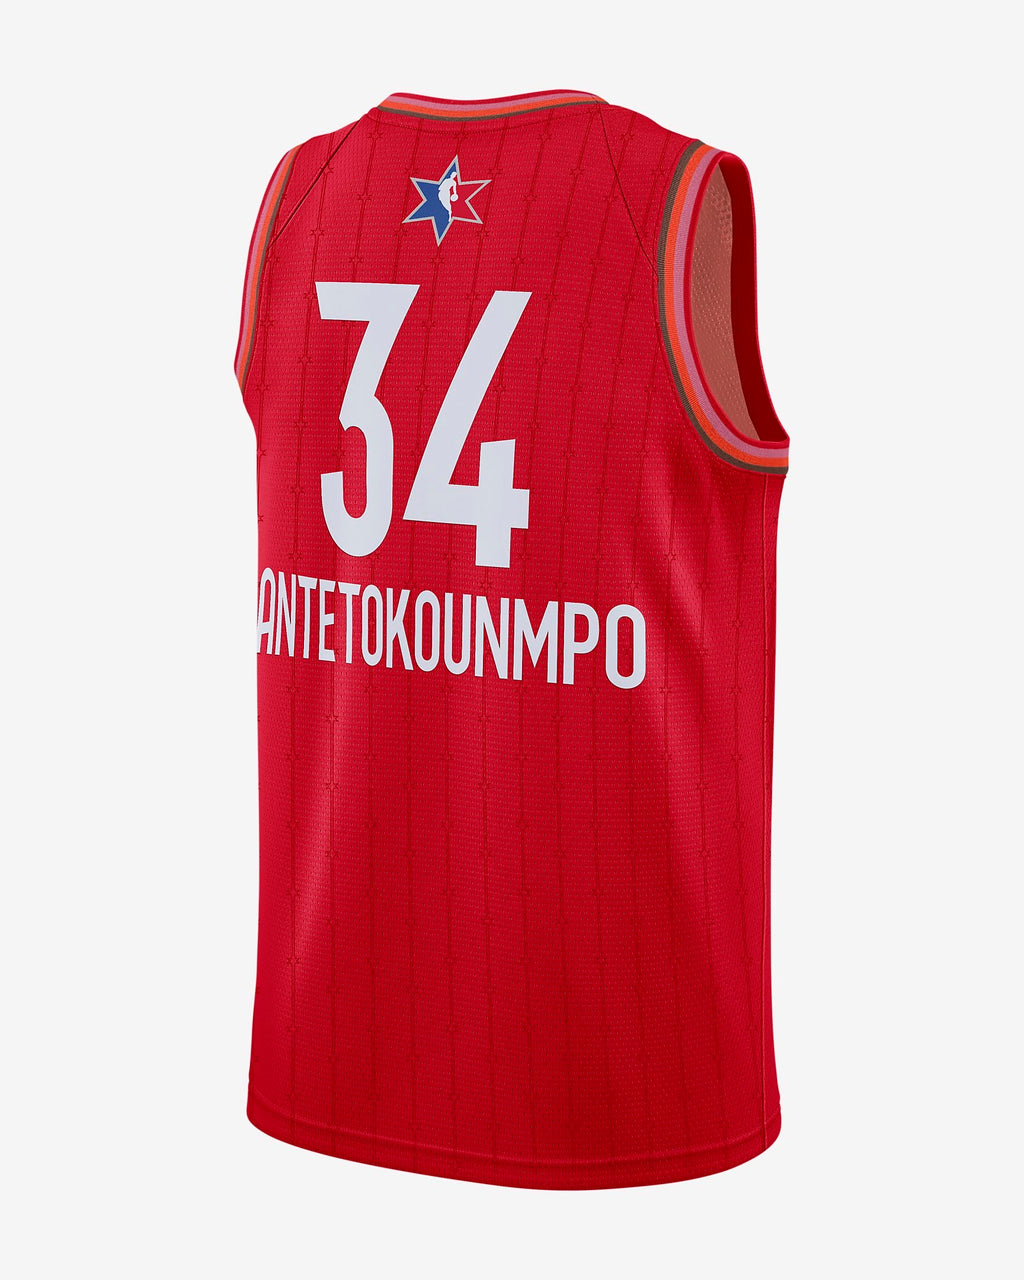 Jordan NBA All Star Swingman jersey - Giannis Antetokounmpo - CJ1063-662